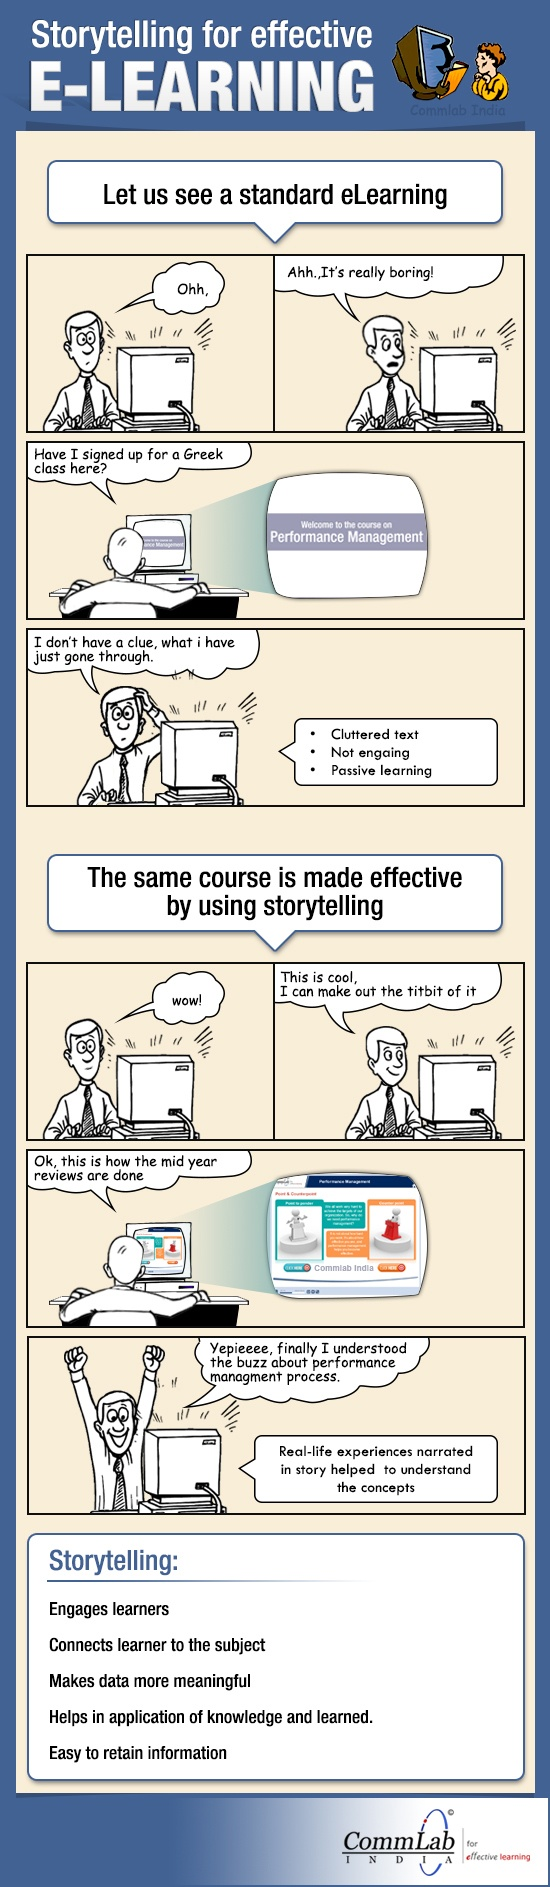 Storytelling For Effective eLearning Infographic